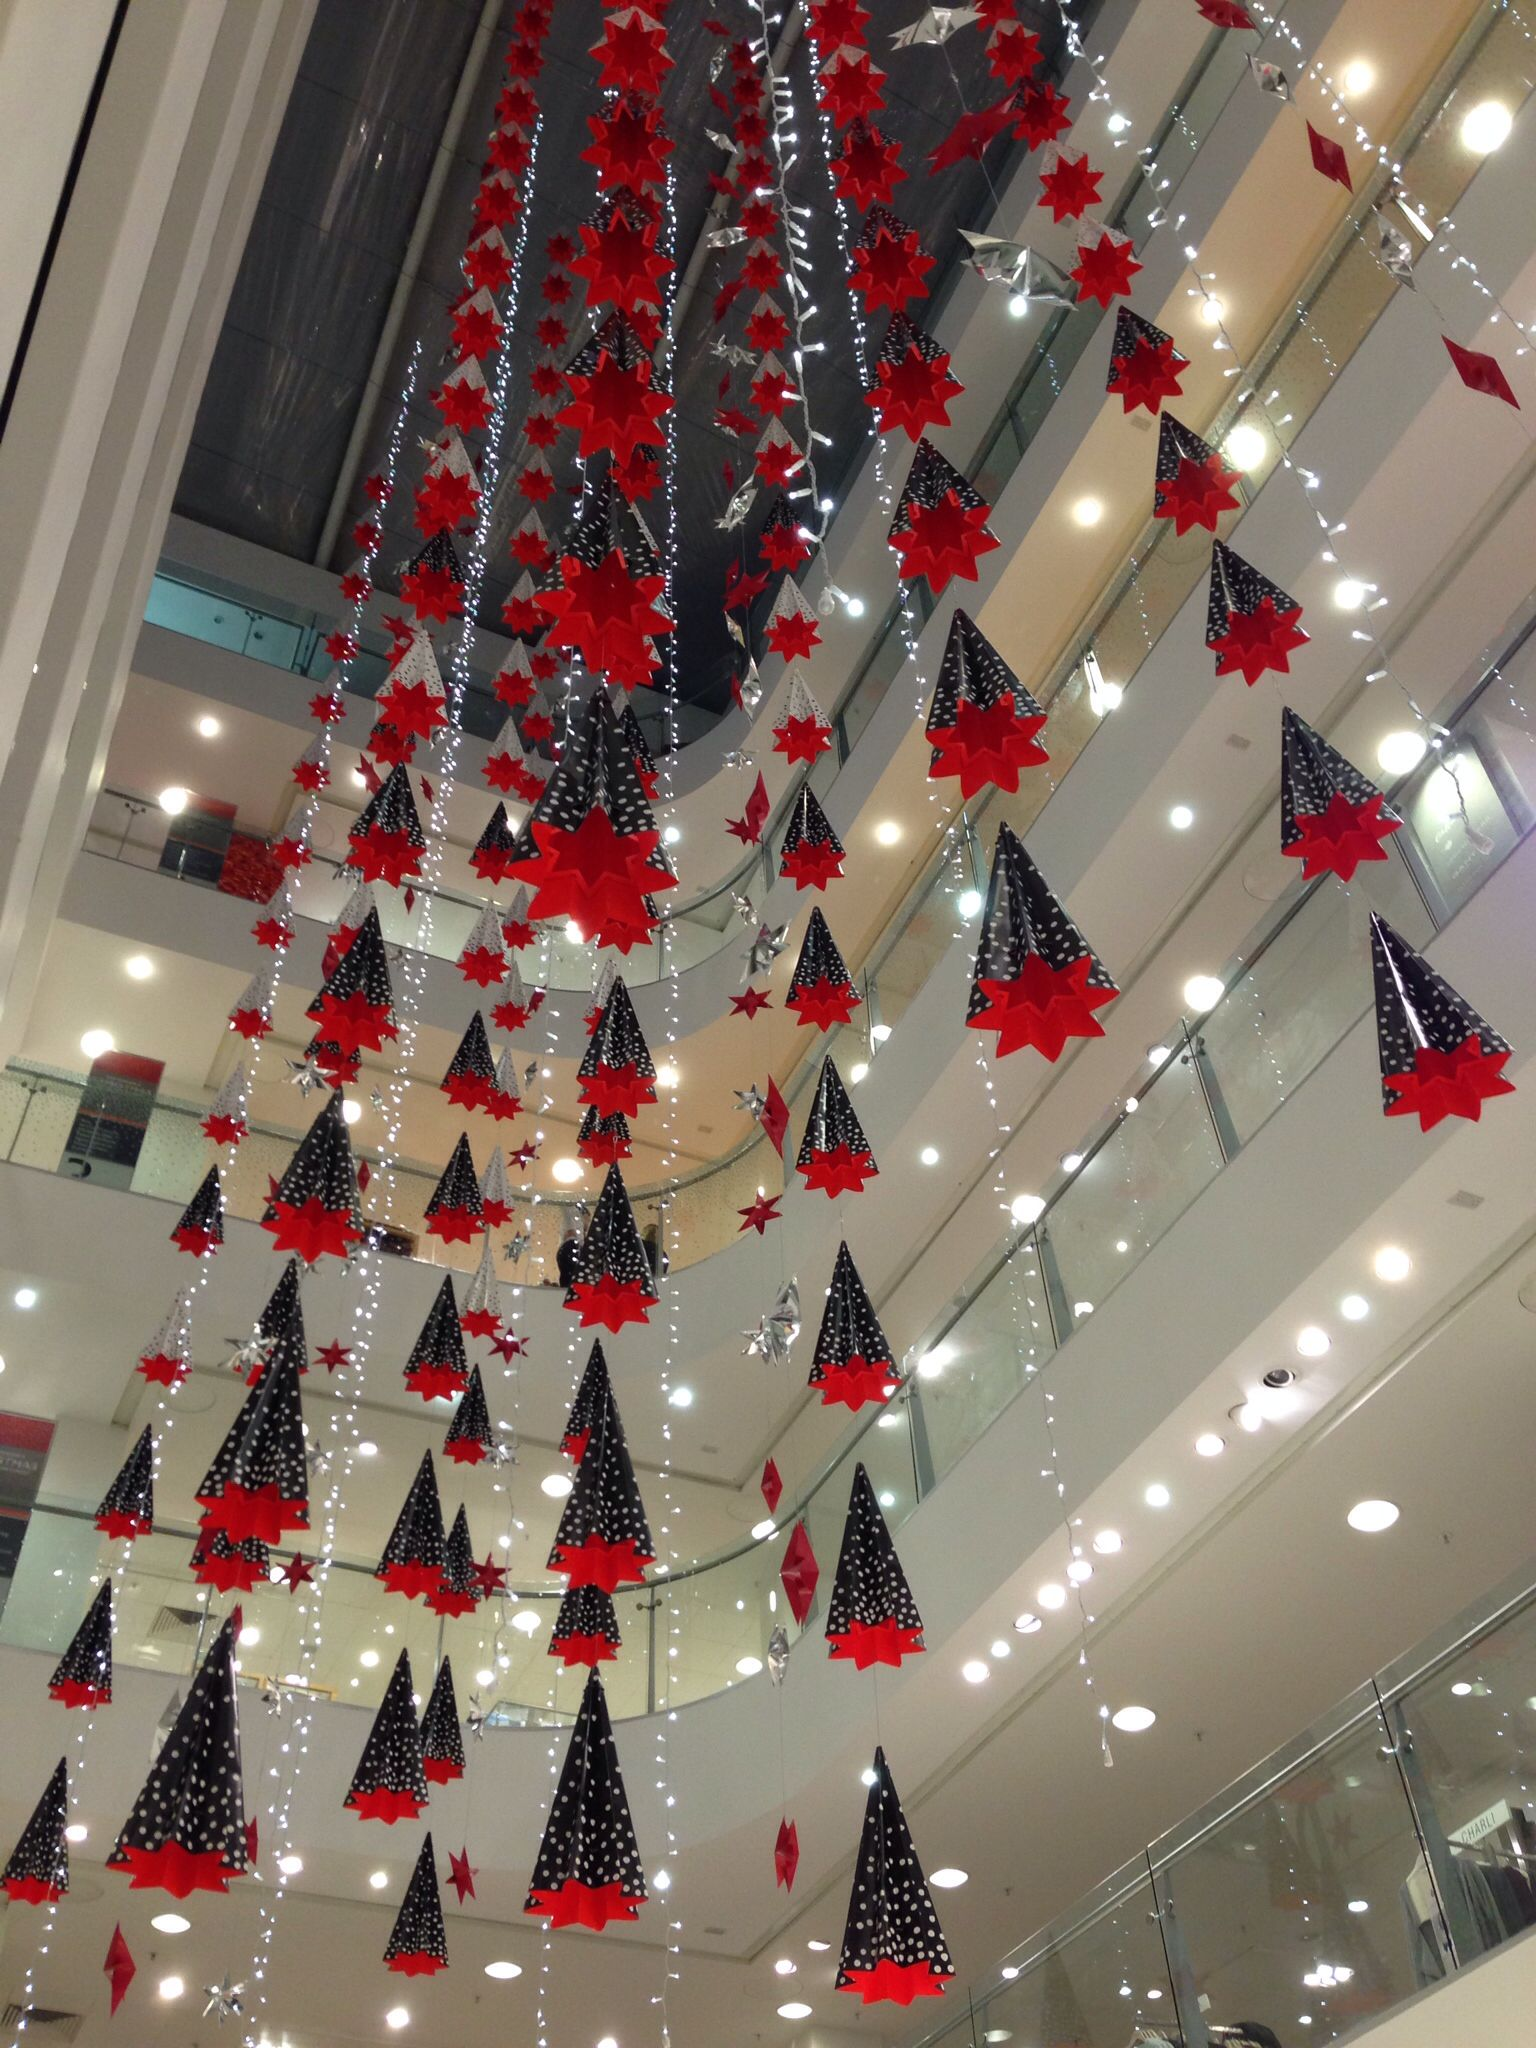 Christmas Decorations Are Up In John Lewis